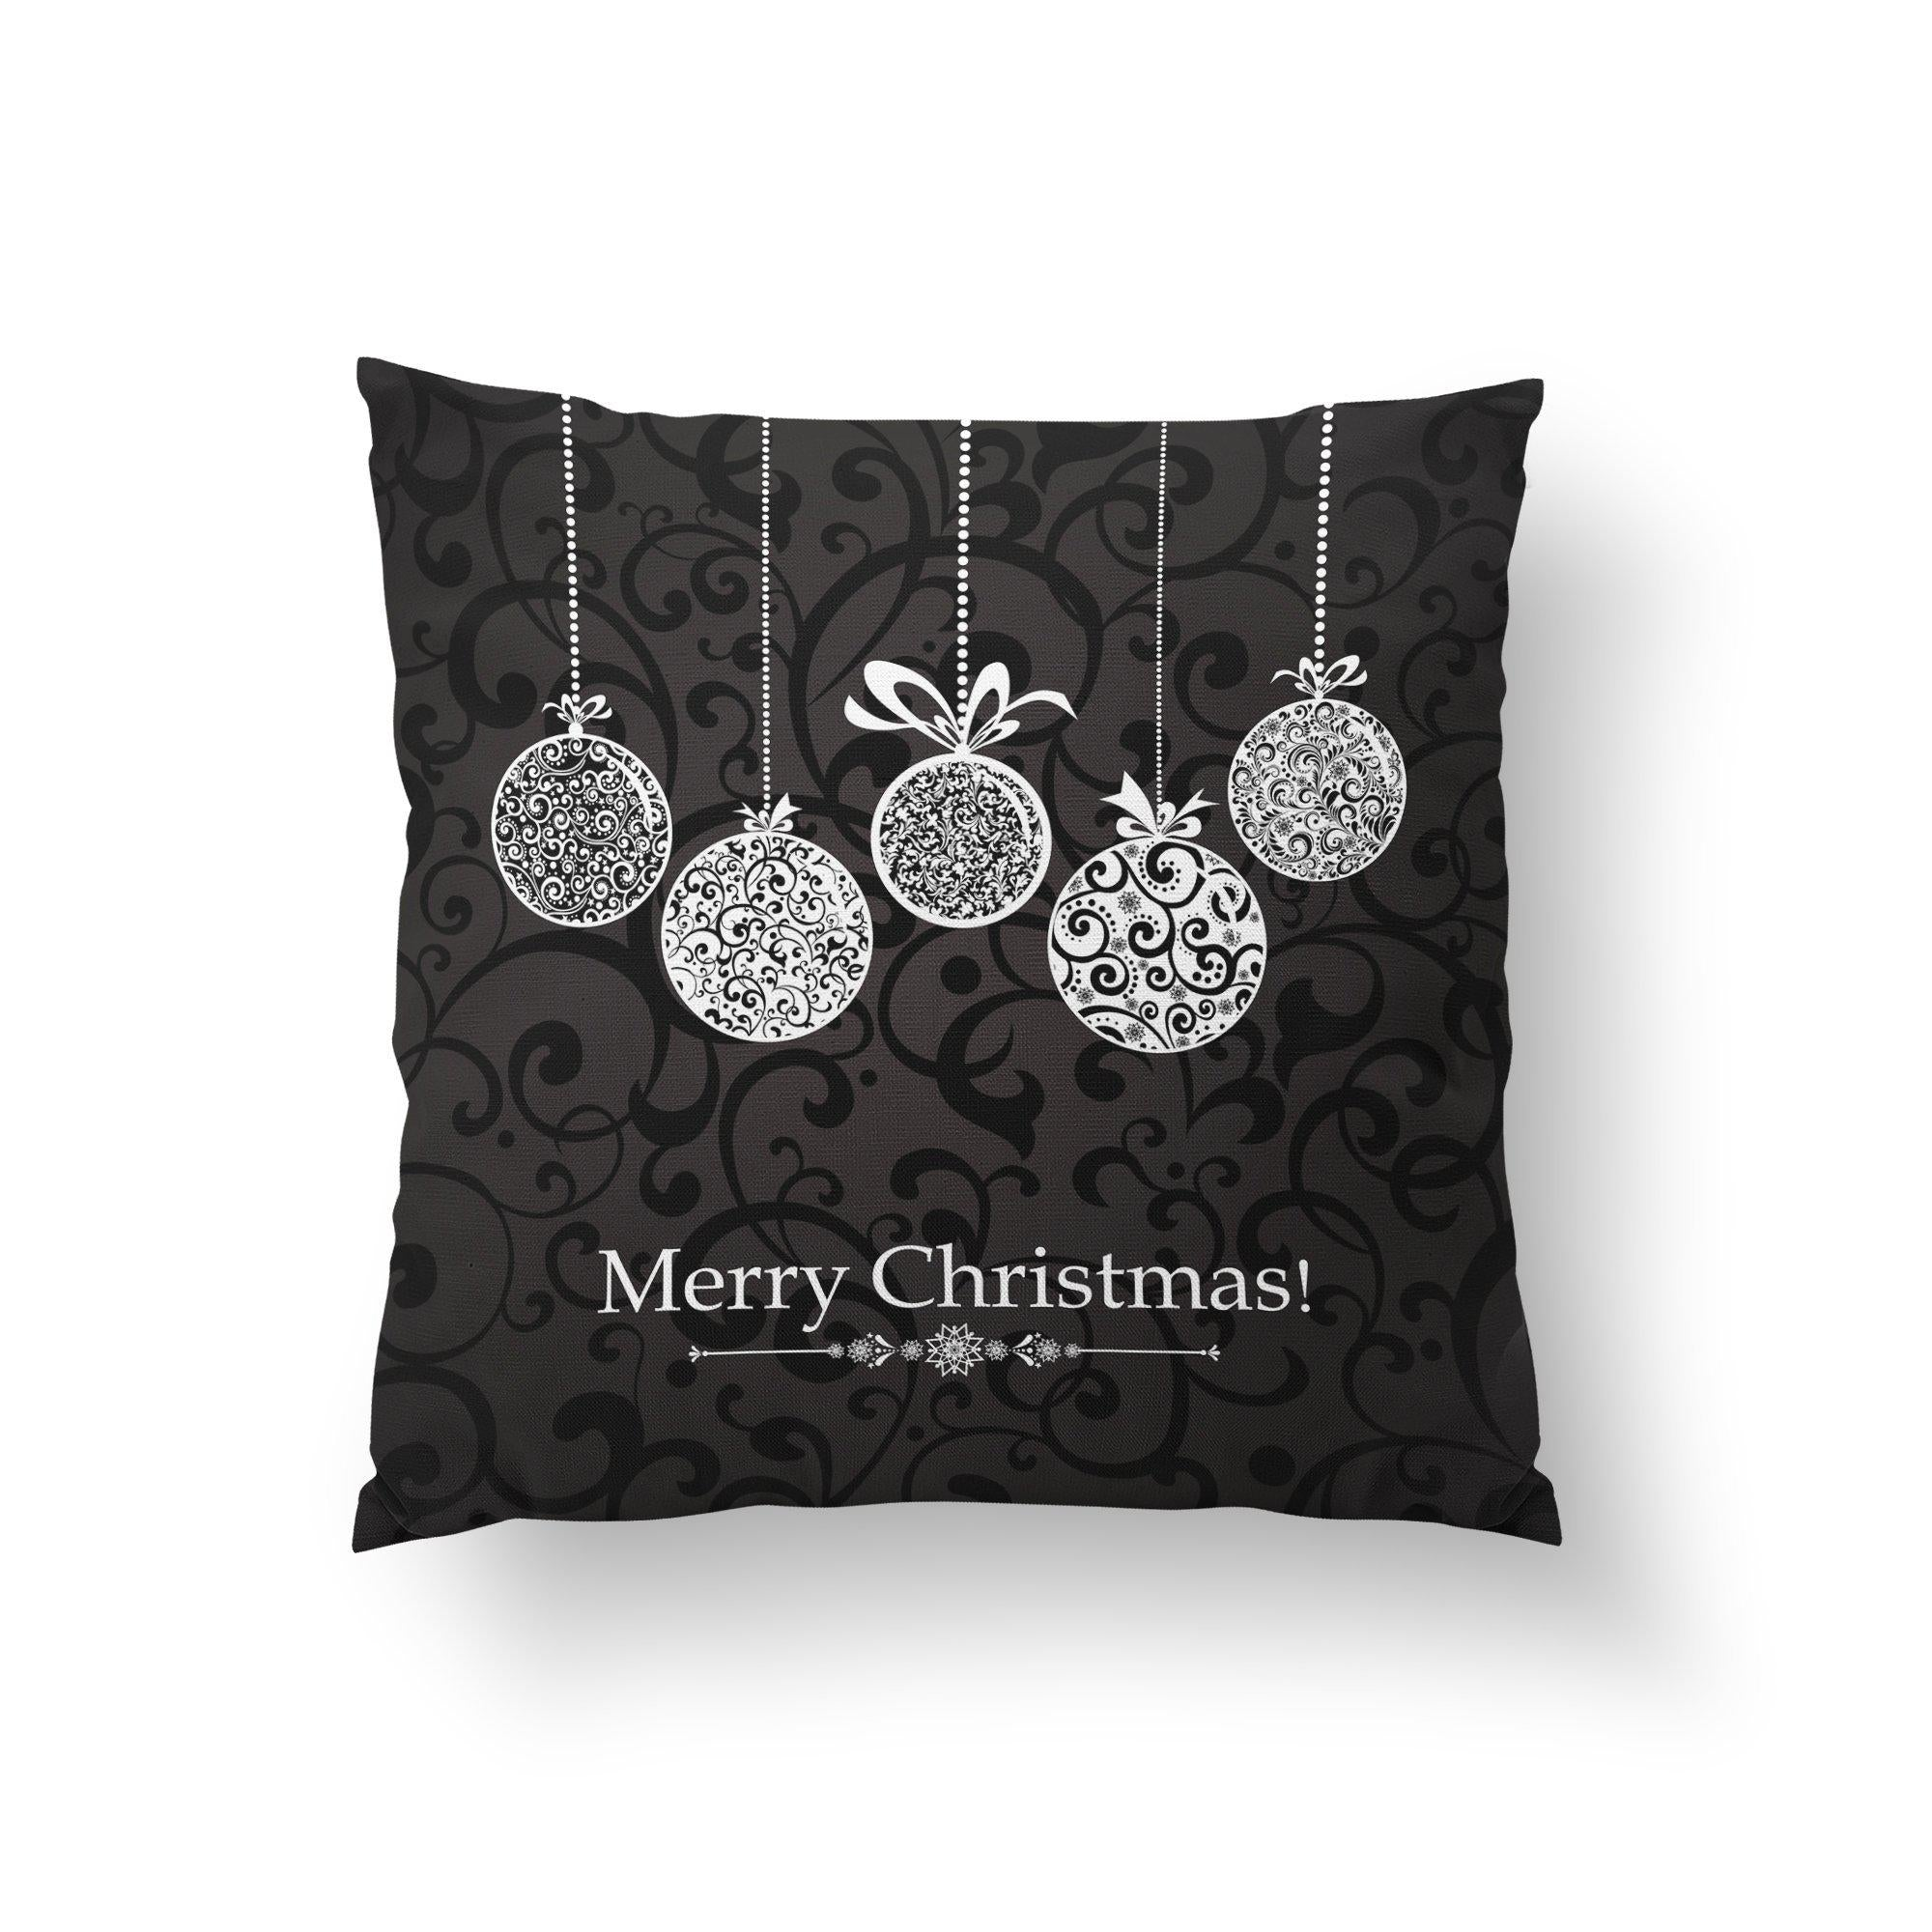 Elegant Christmas Pillow - Pillow Covers - W.FRANCIS